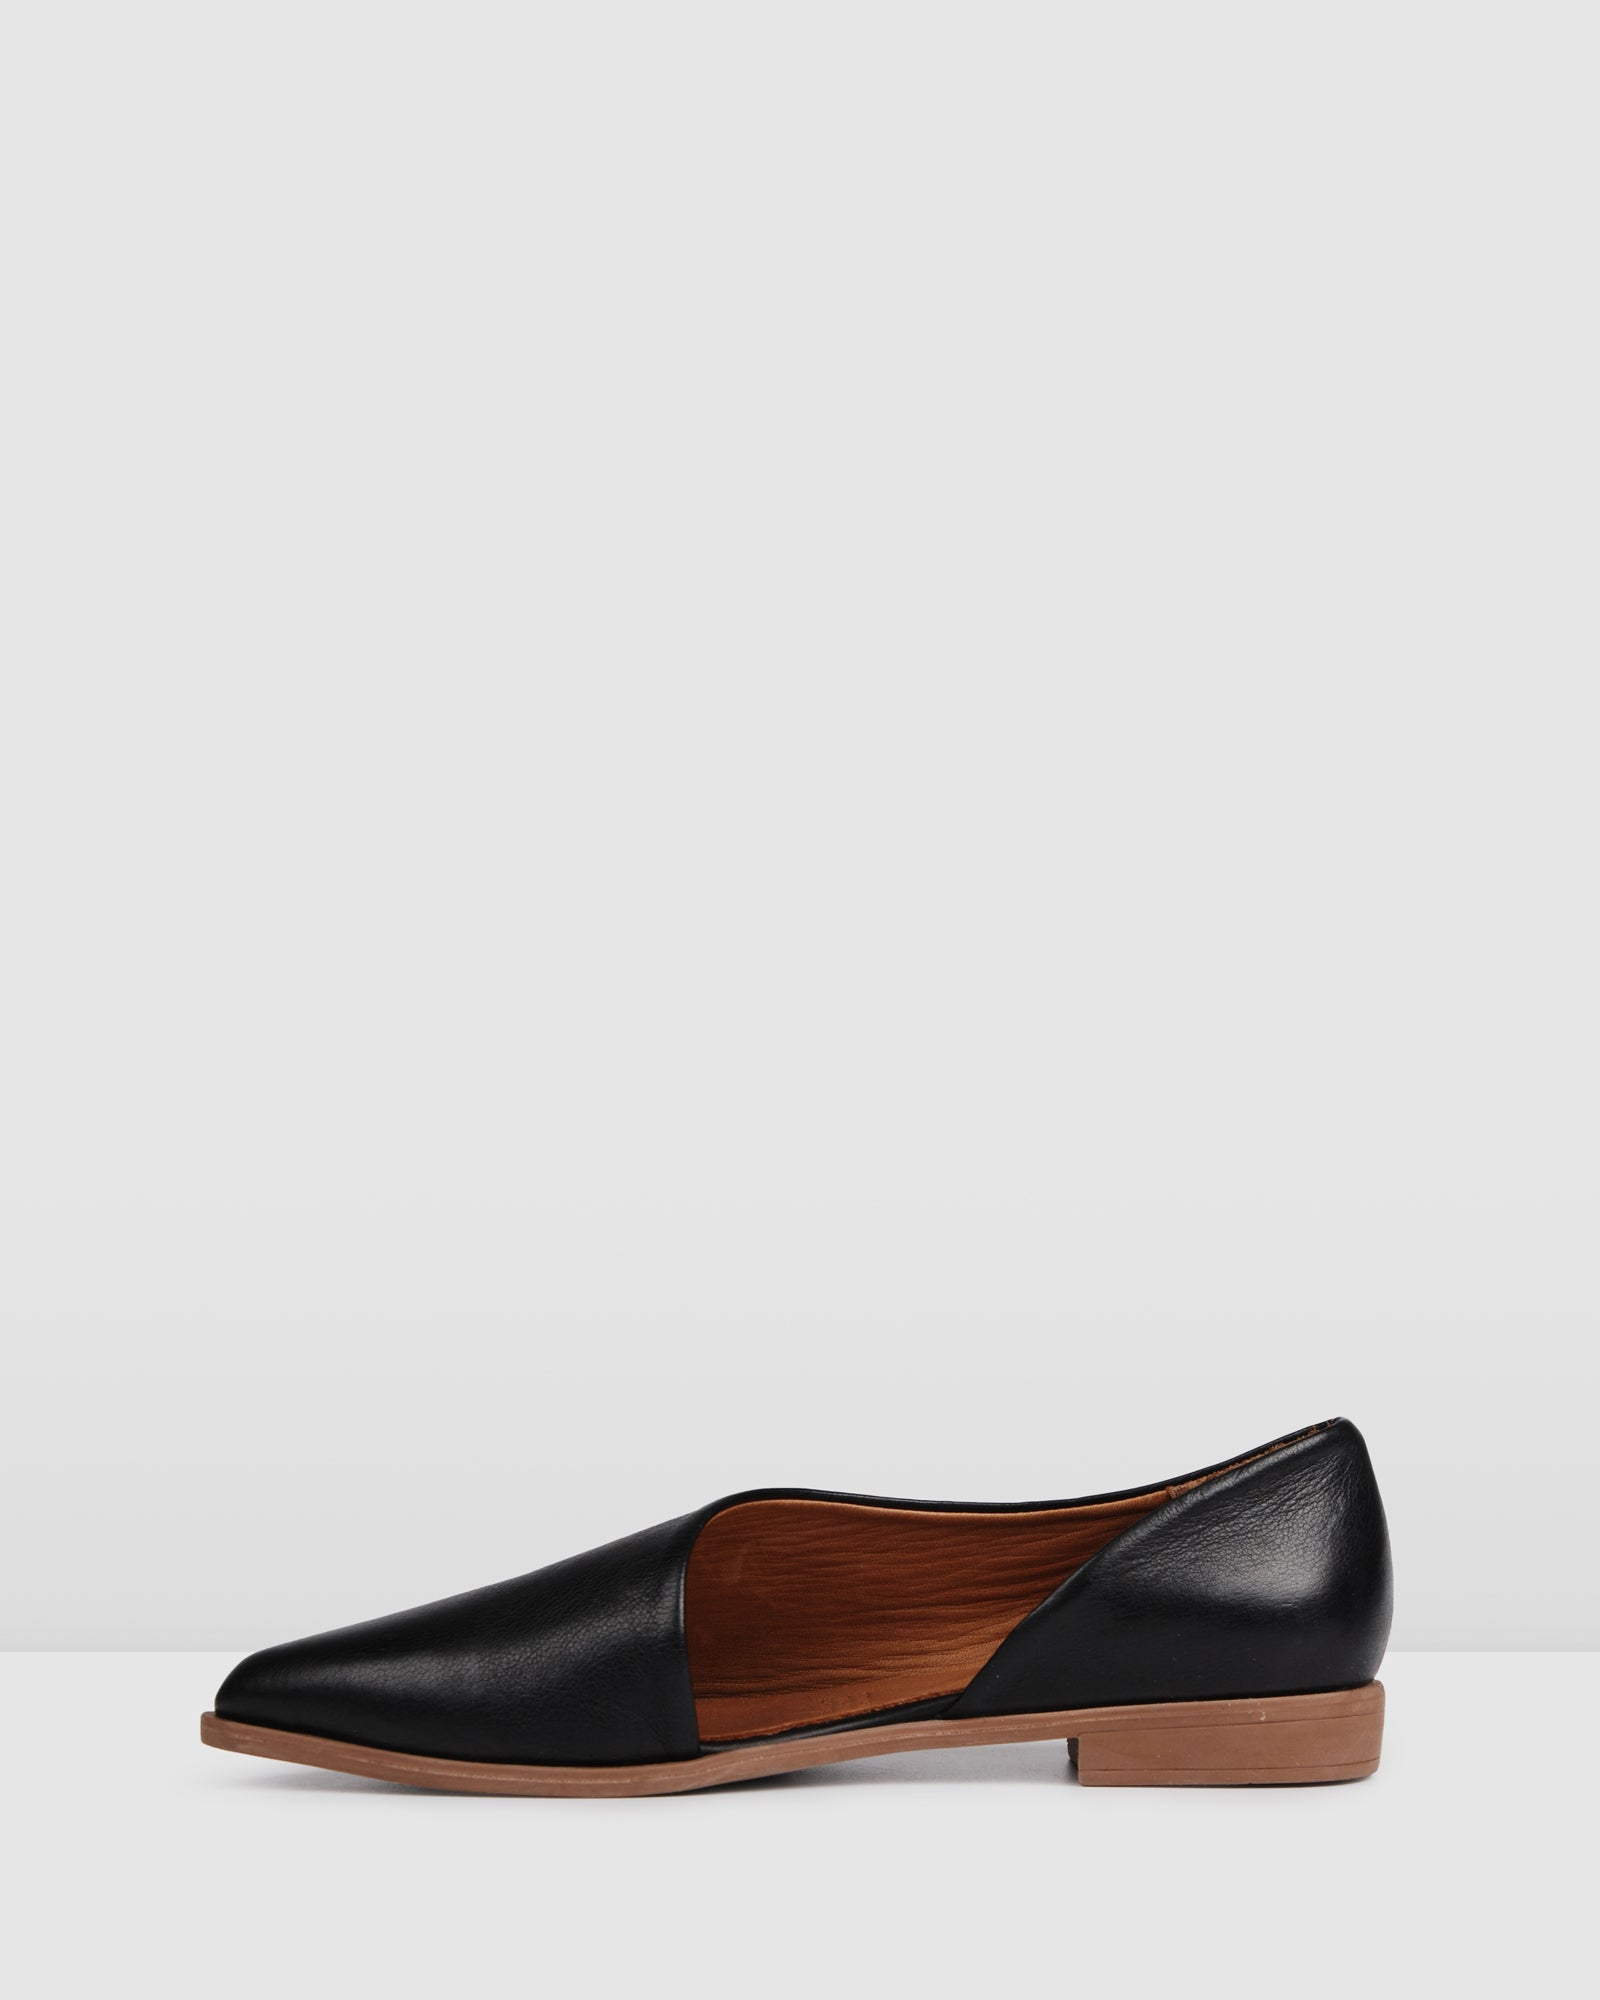 LISMORE CASUAL FLATS BLACK LEATHER